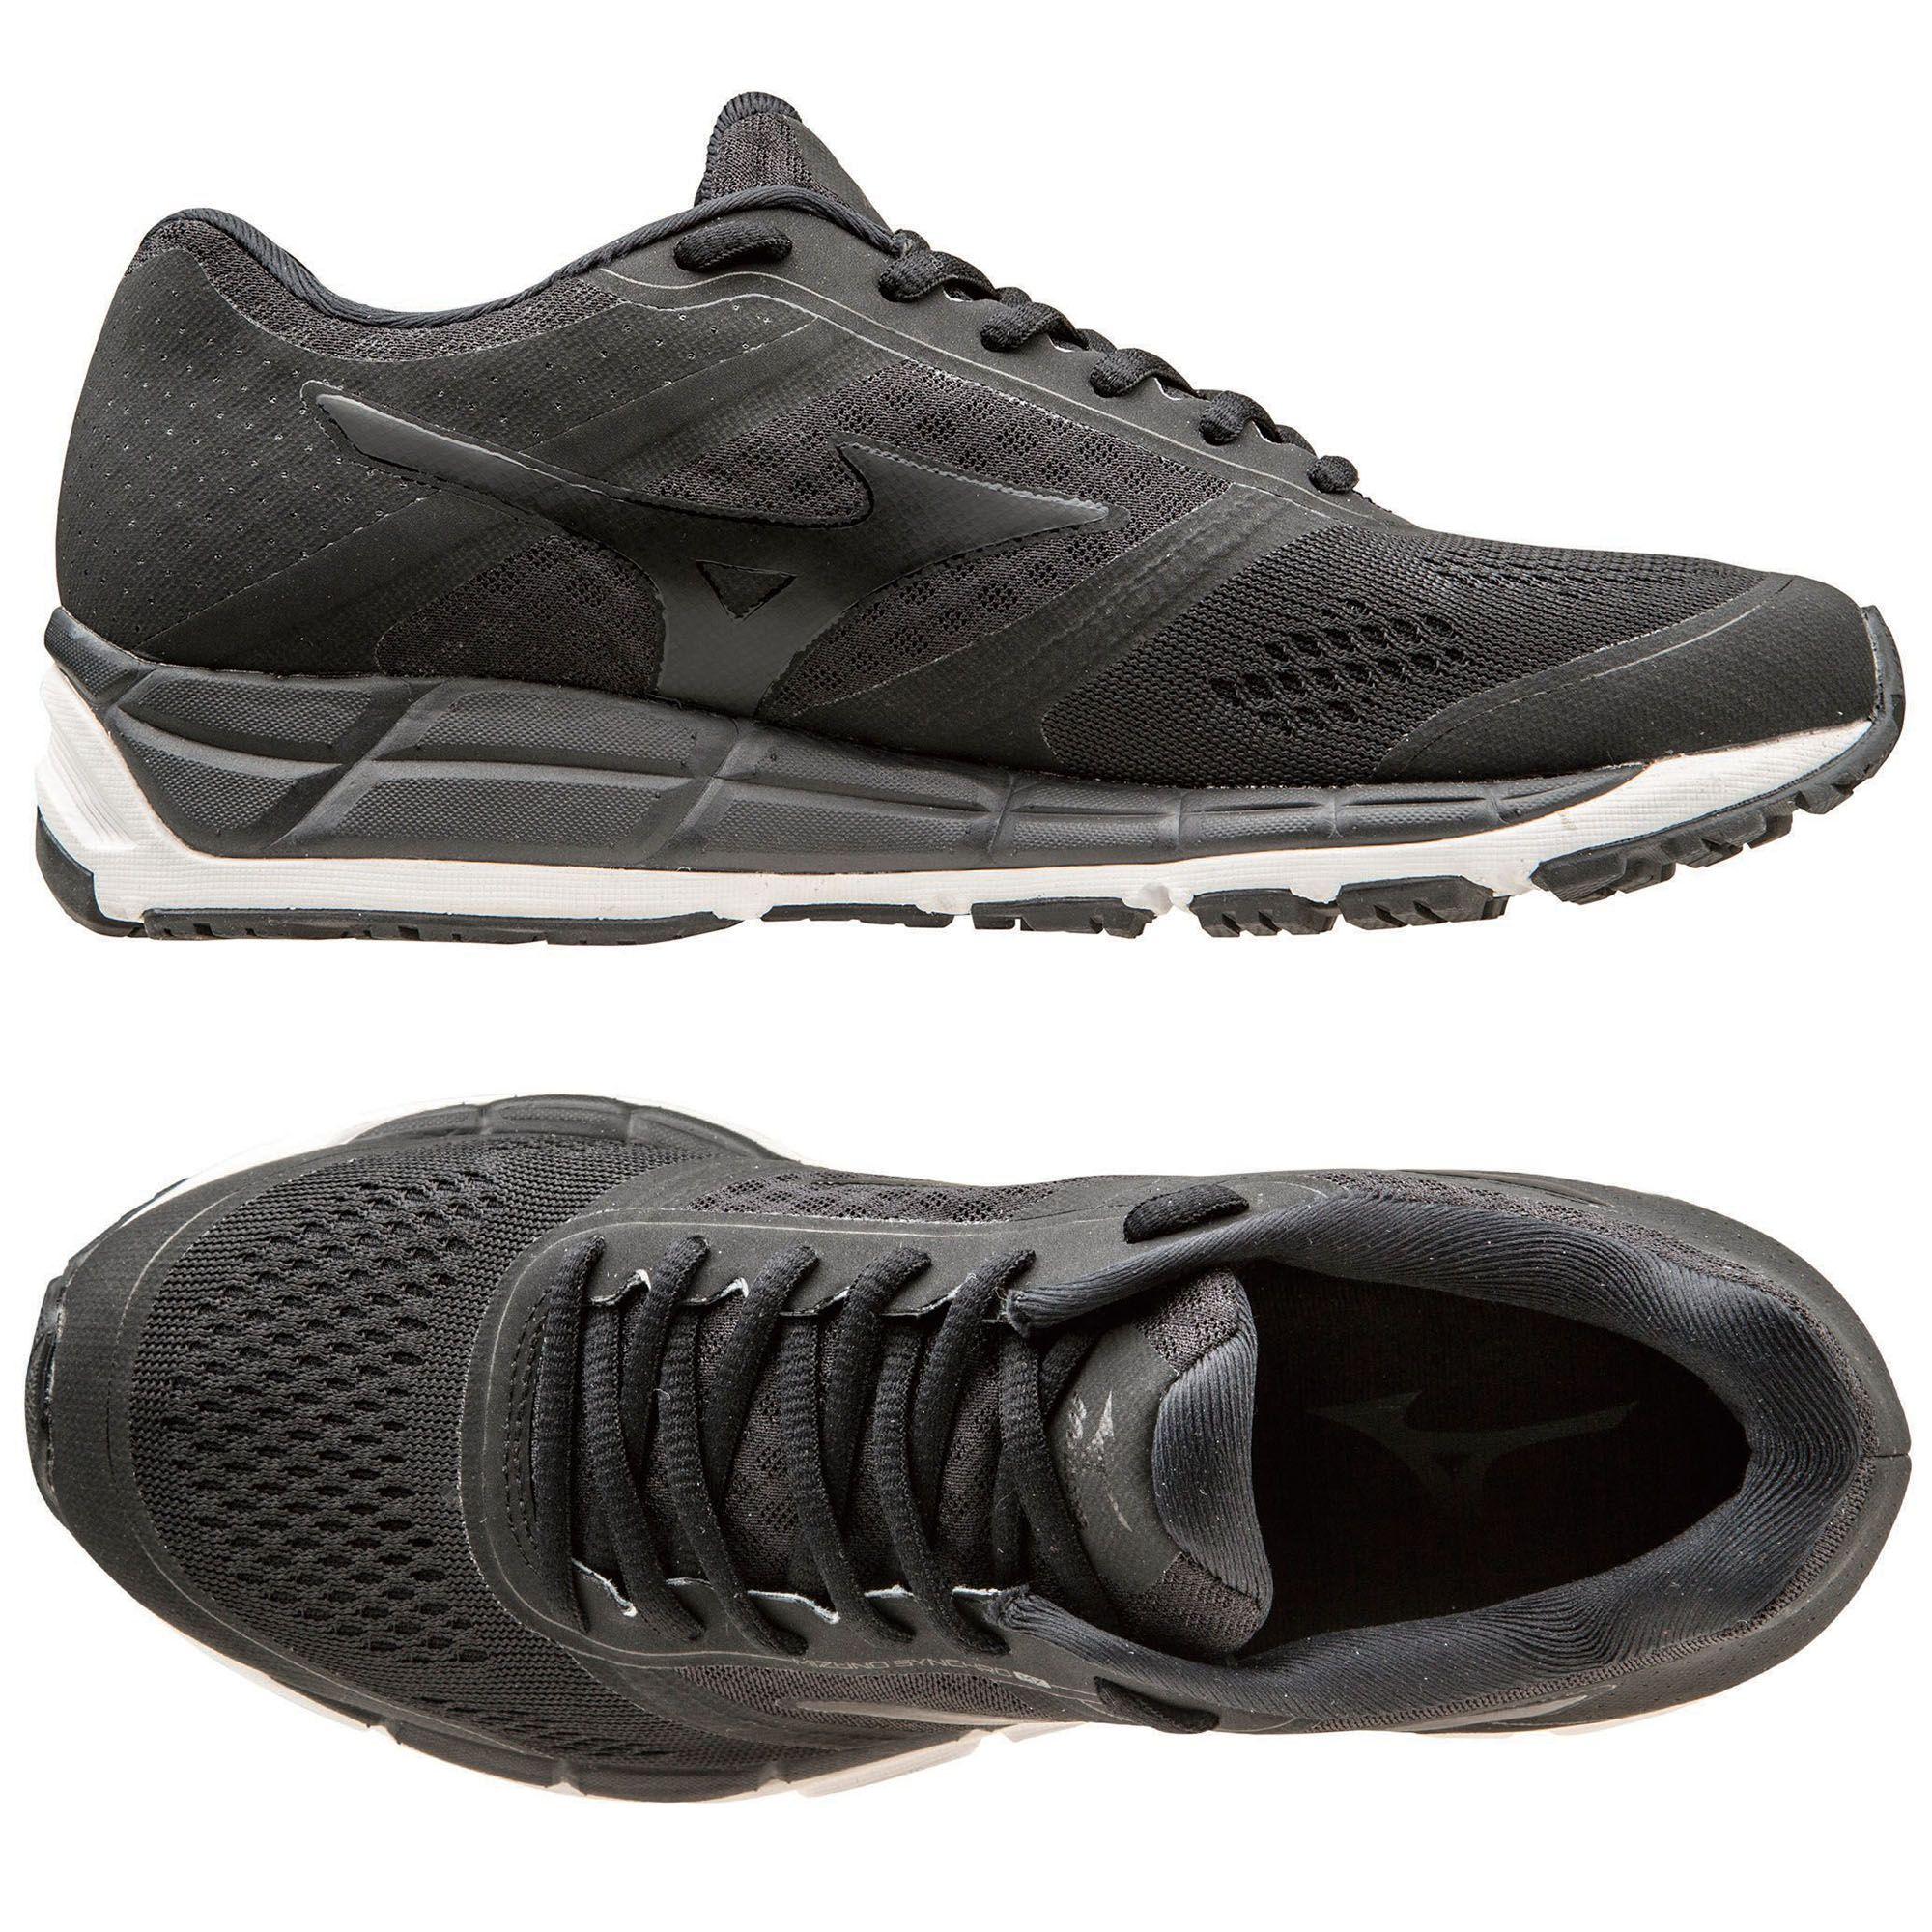 Good Running Shoes For Men